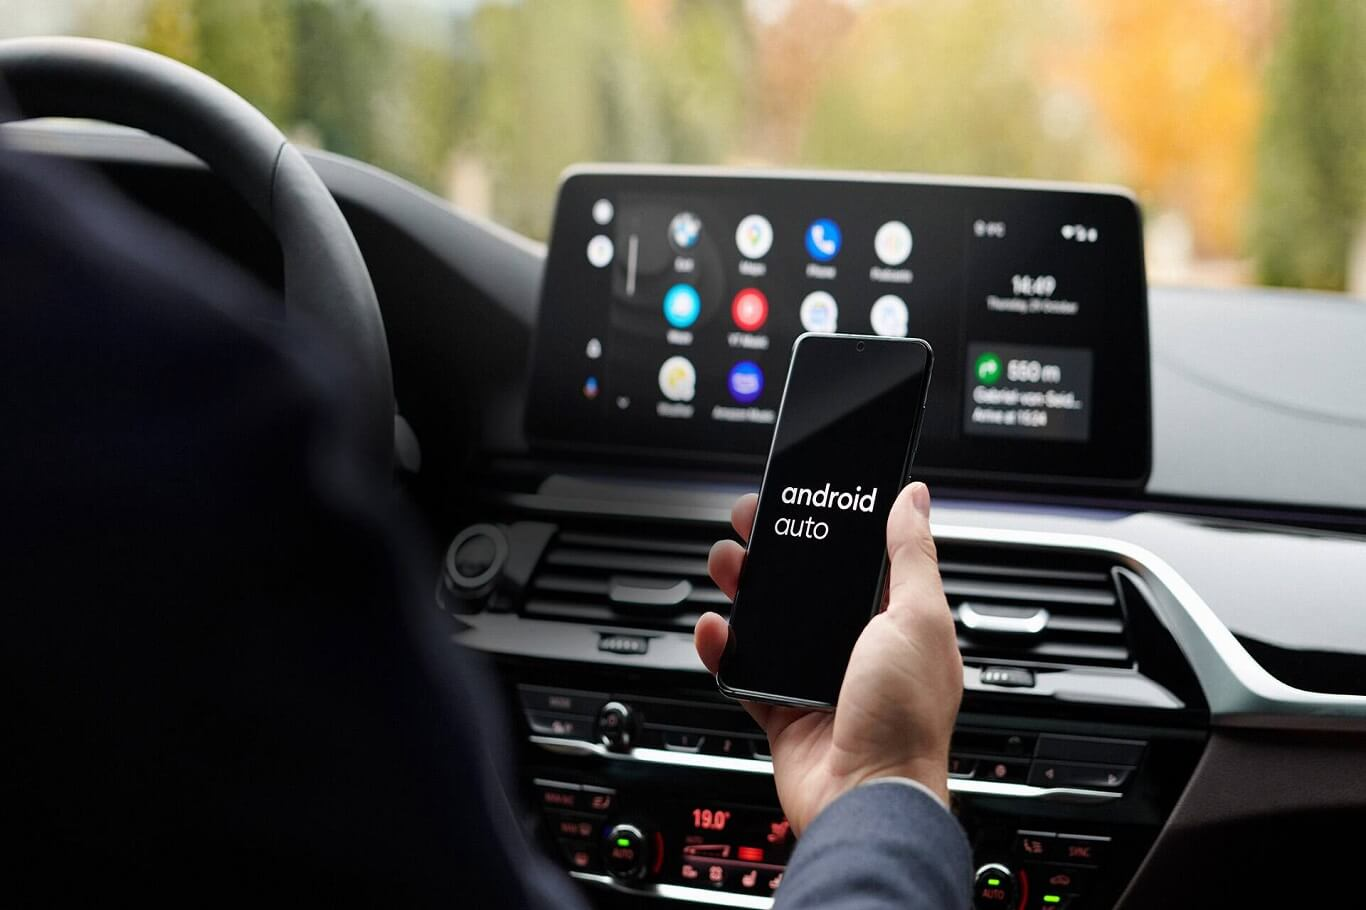 Android auto not working